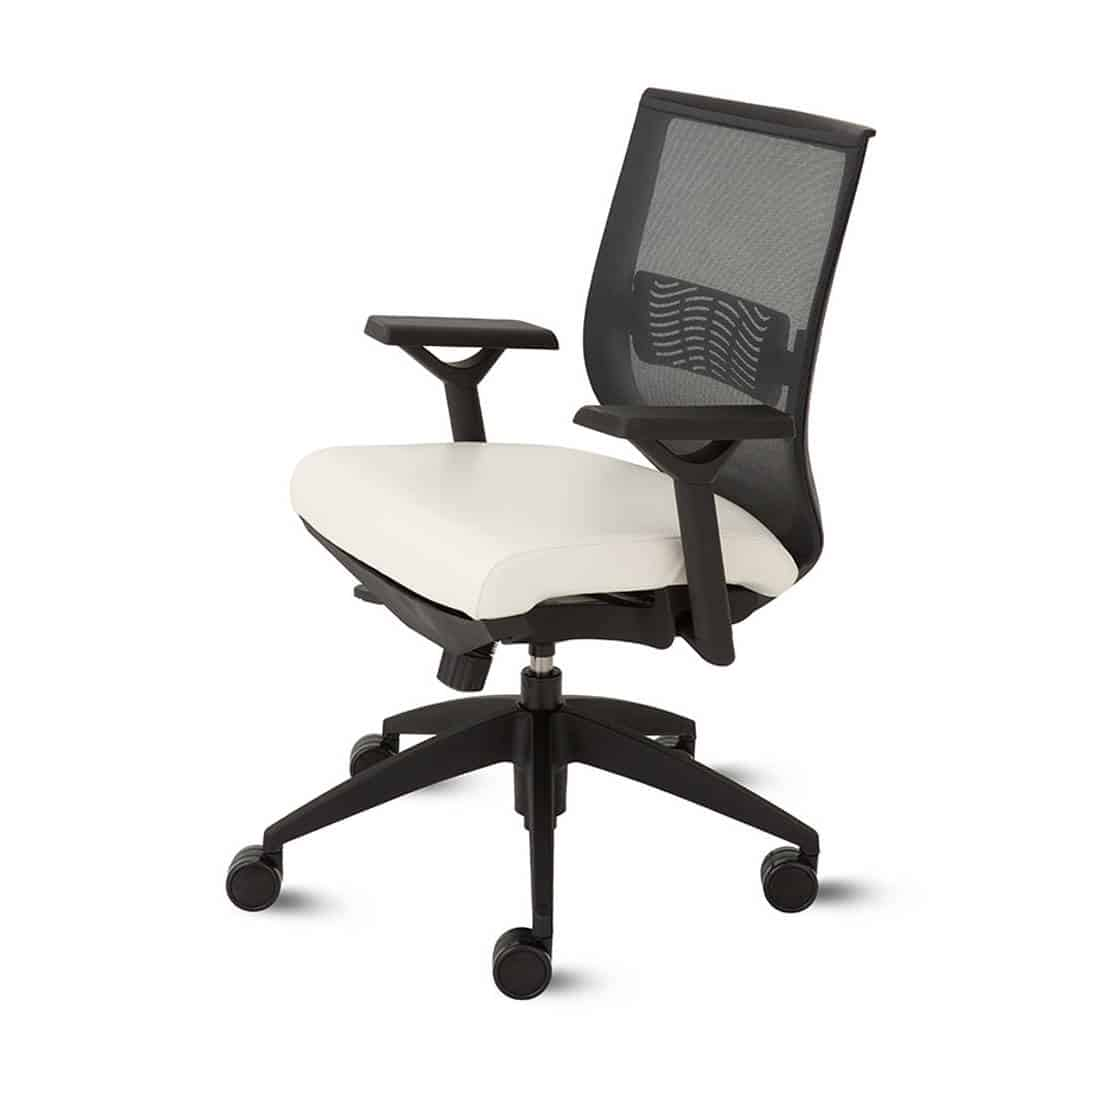 9 to 5 Aria upholstered seat with waterfall ege and pneumatic seat with lumbar support task chair